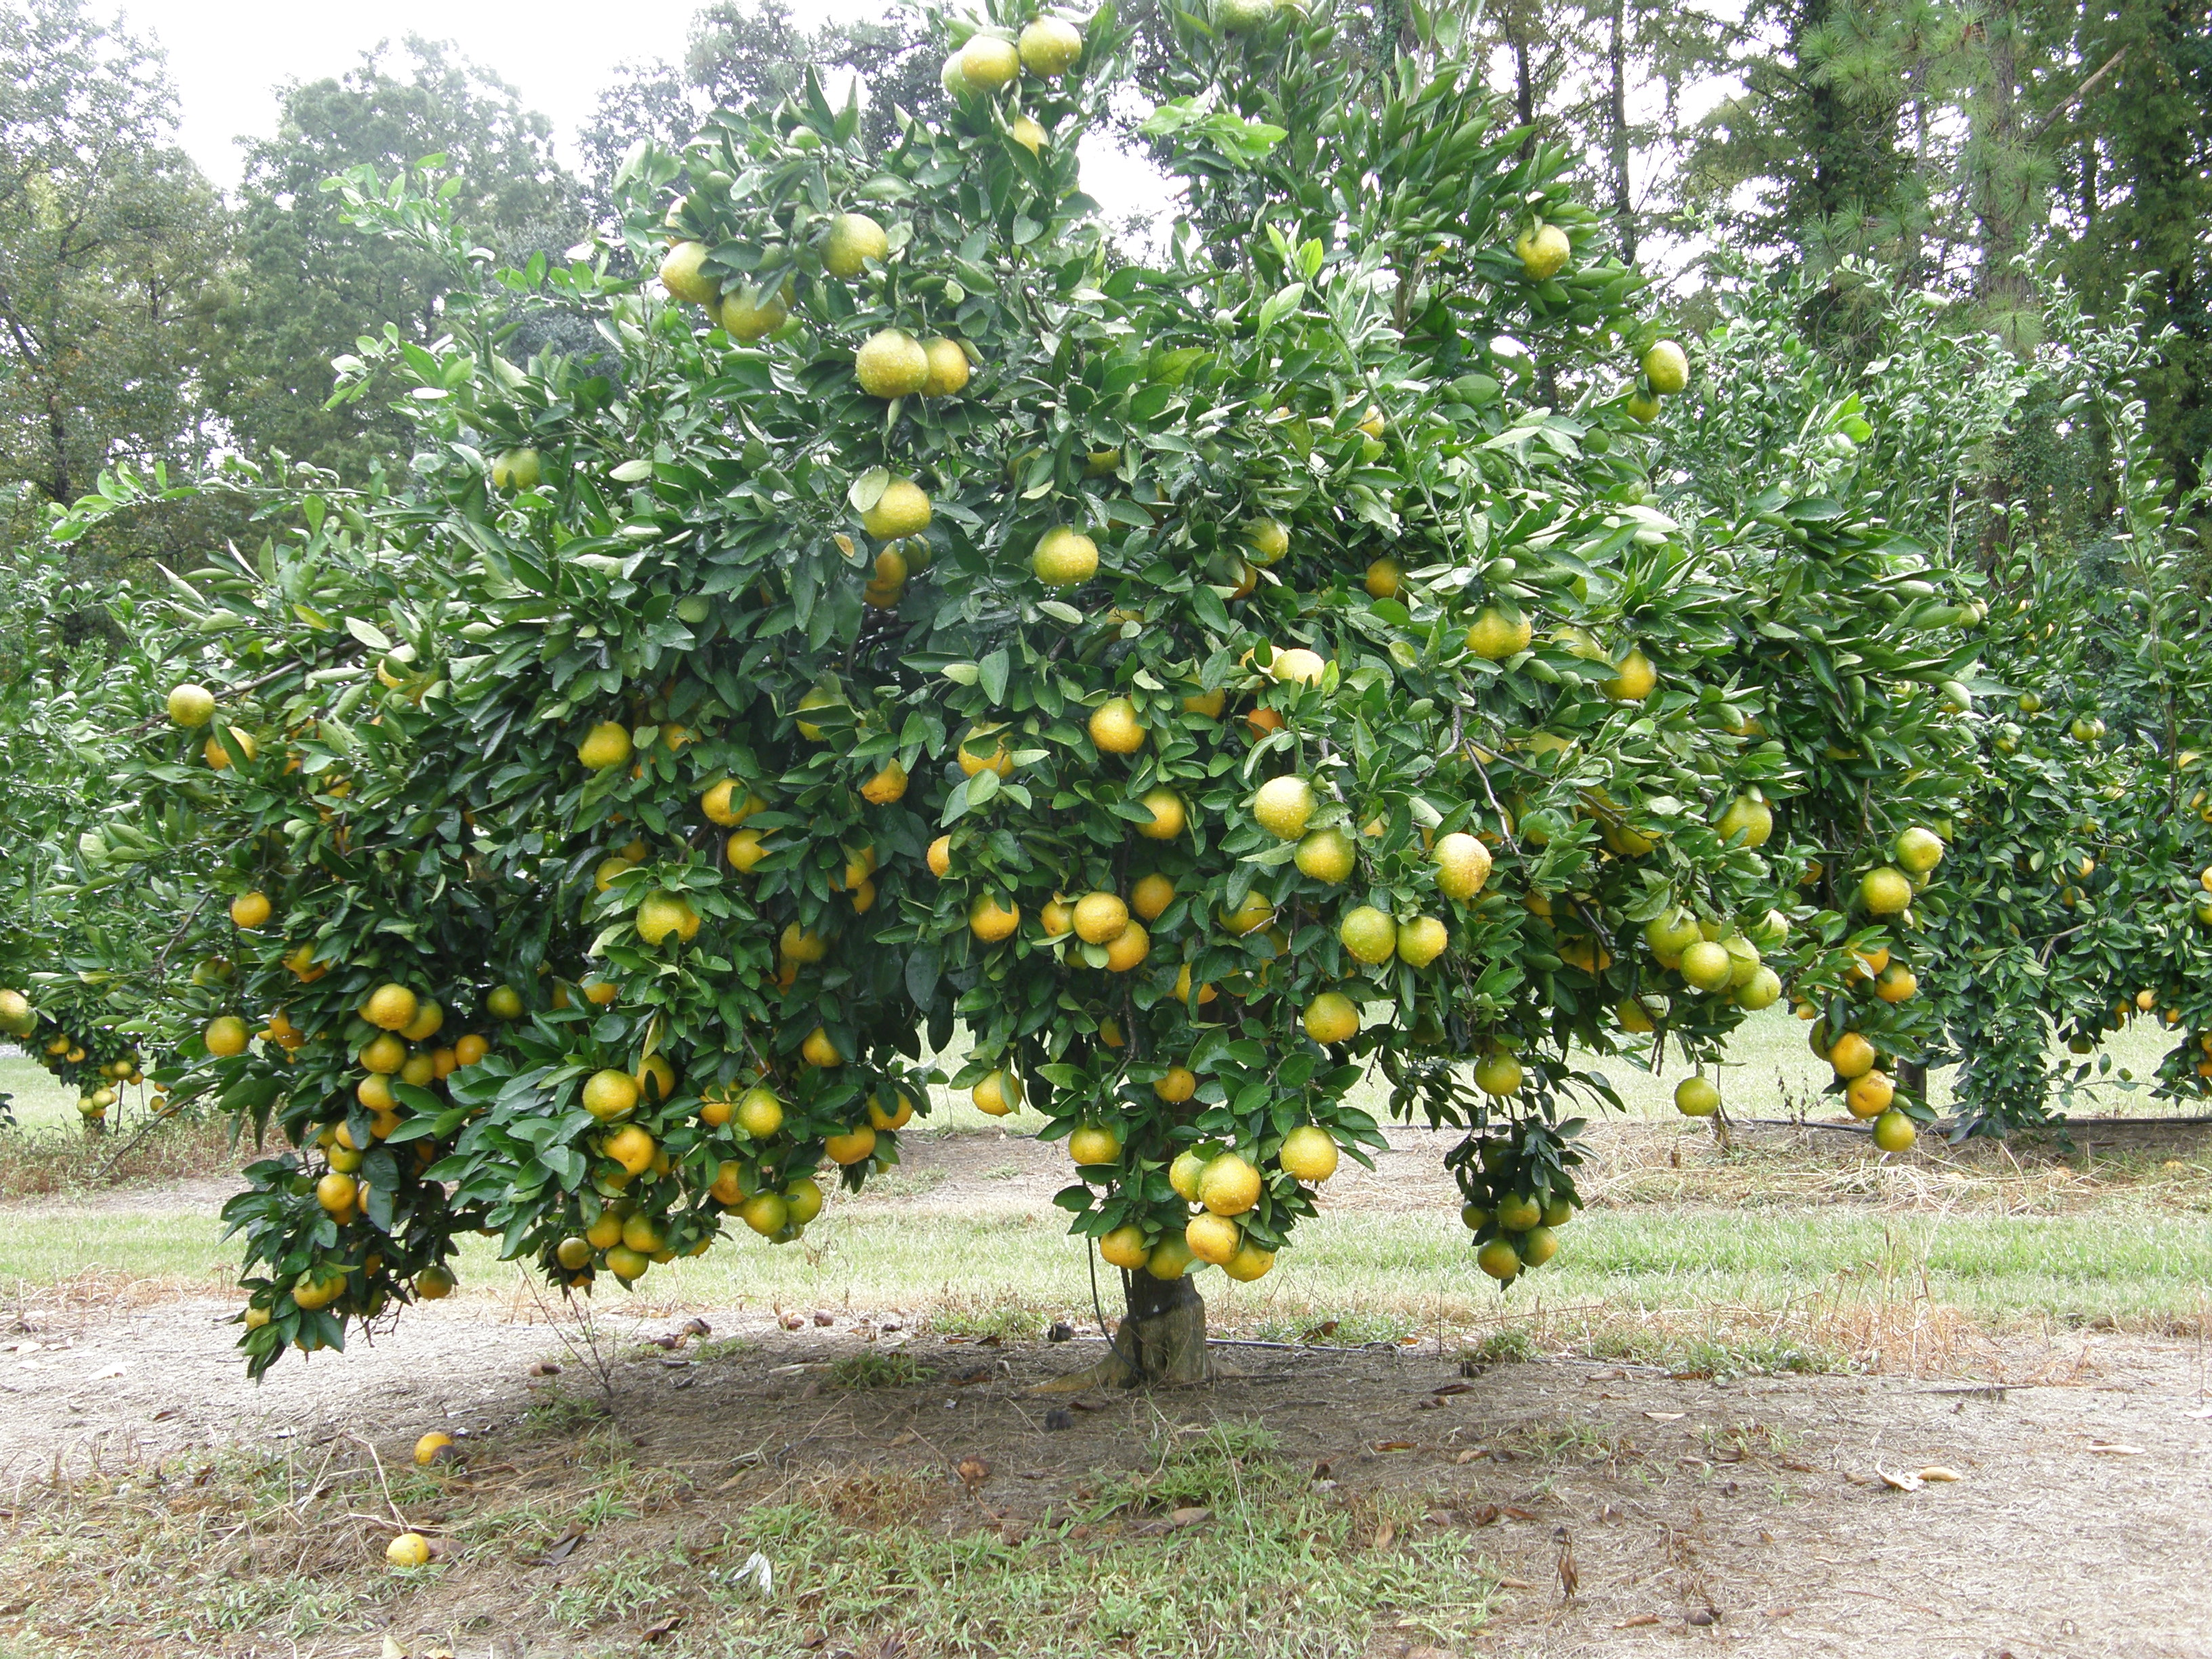 Willing landscape landscaping plants and trees for sale for Fruit trees for sale